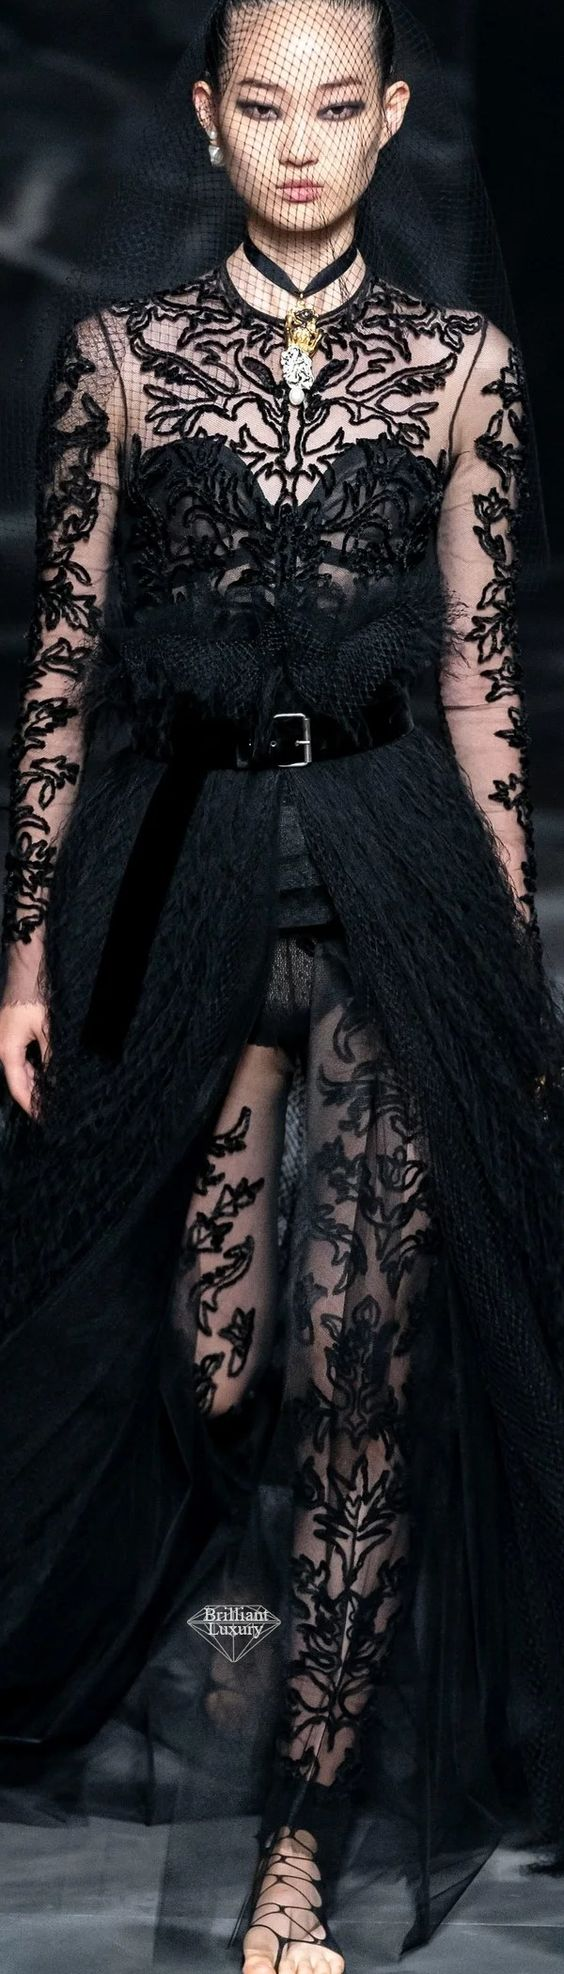 DIOR Black Lace Couture Fashion